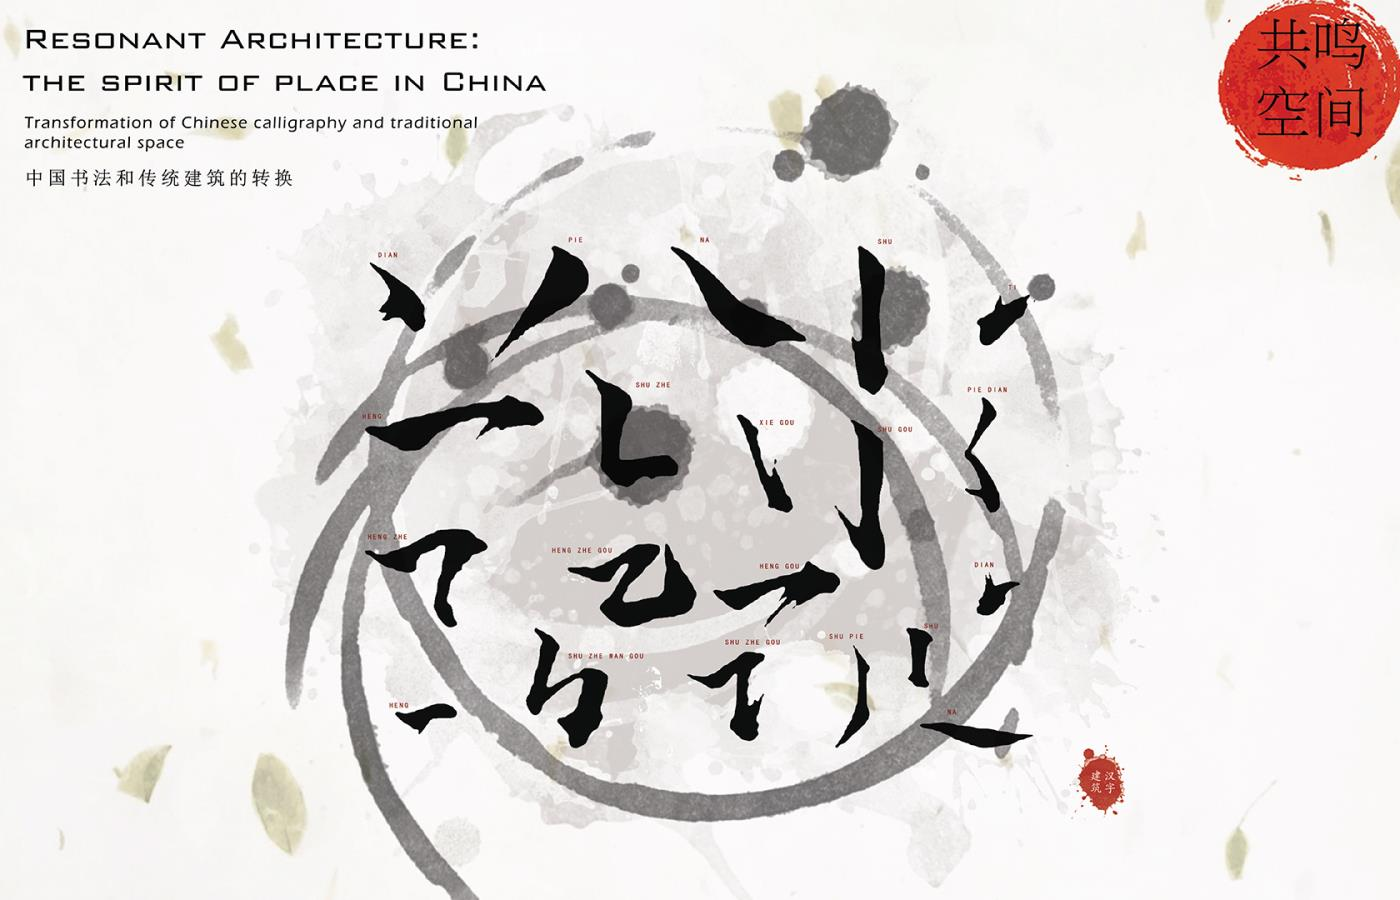 Resonant Architecture: The Spirit of Place in China